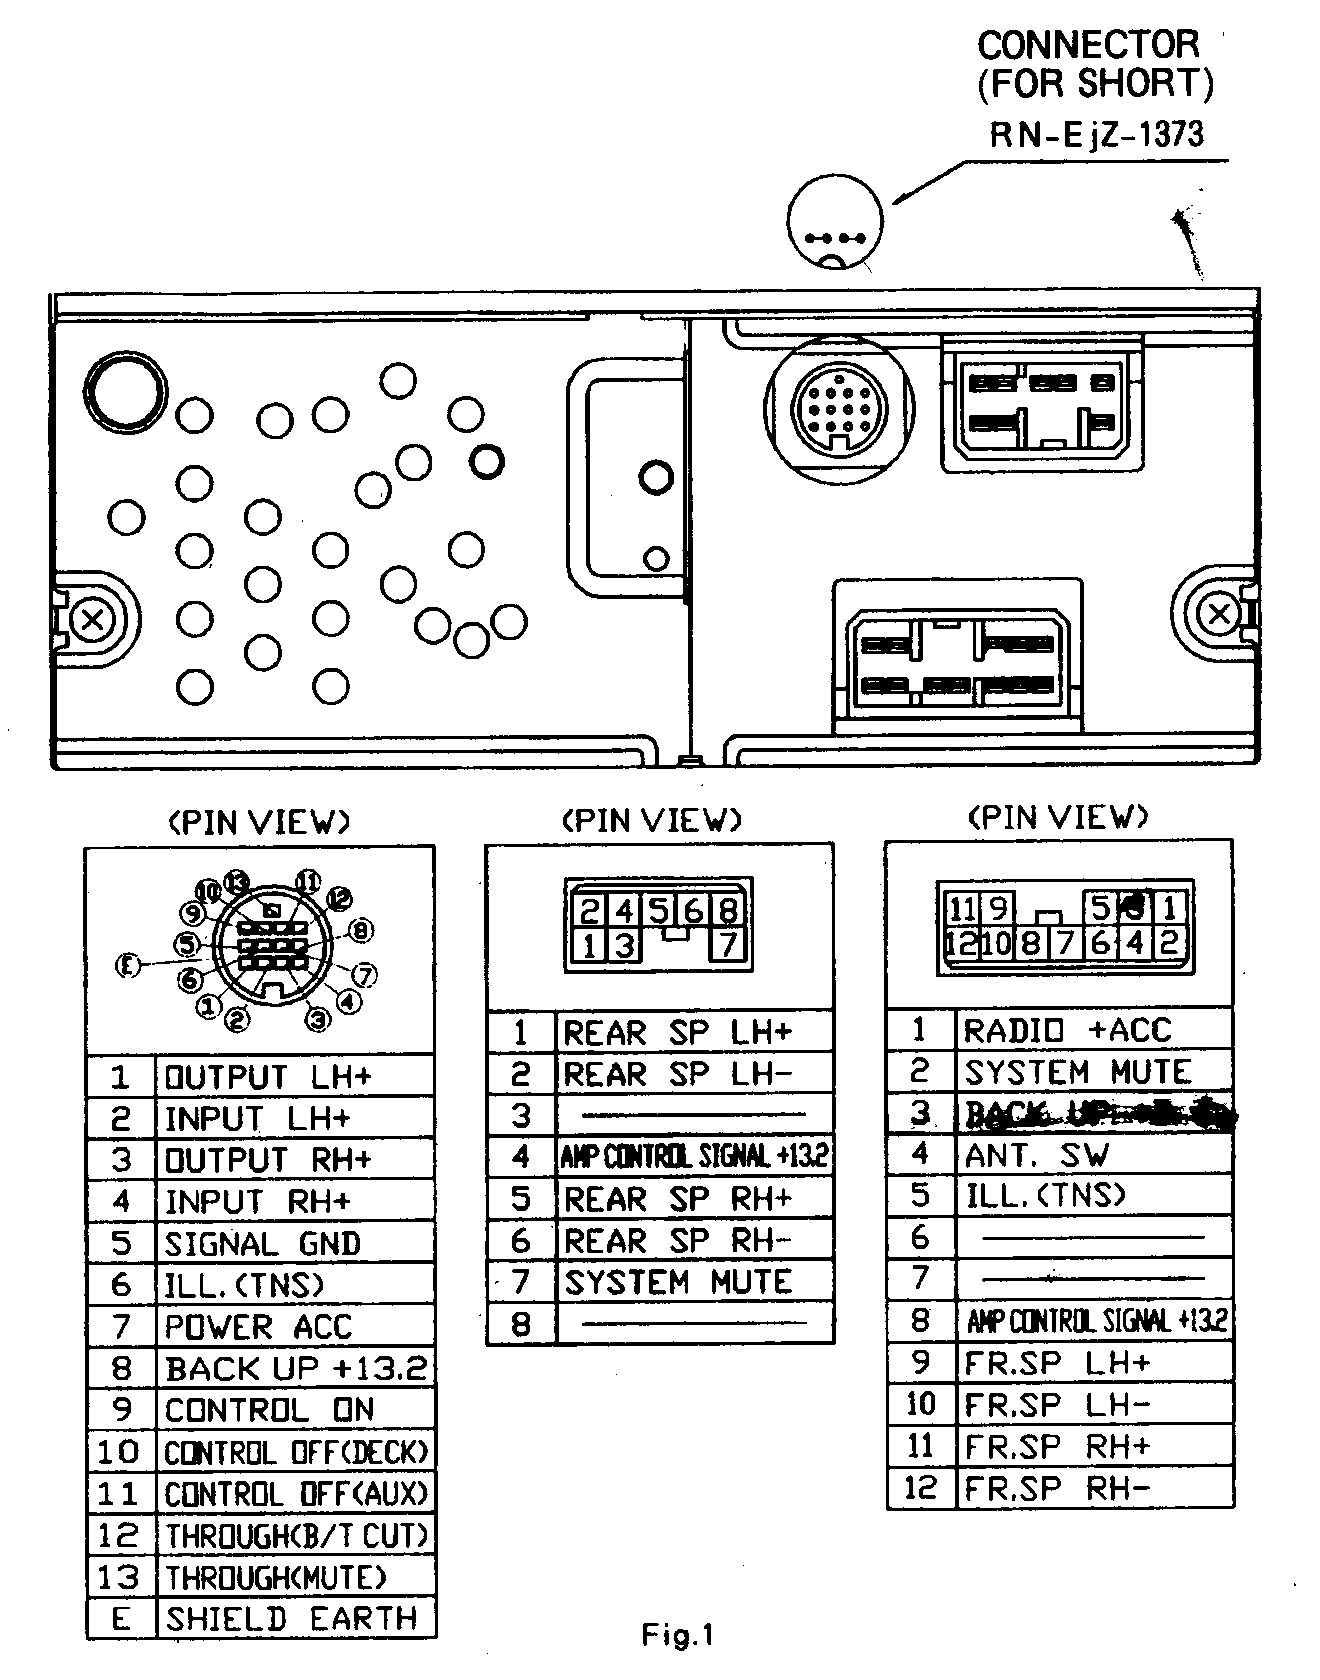 WRG-7045] 1998 Mazda Radio Wiring Diagram on